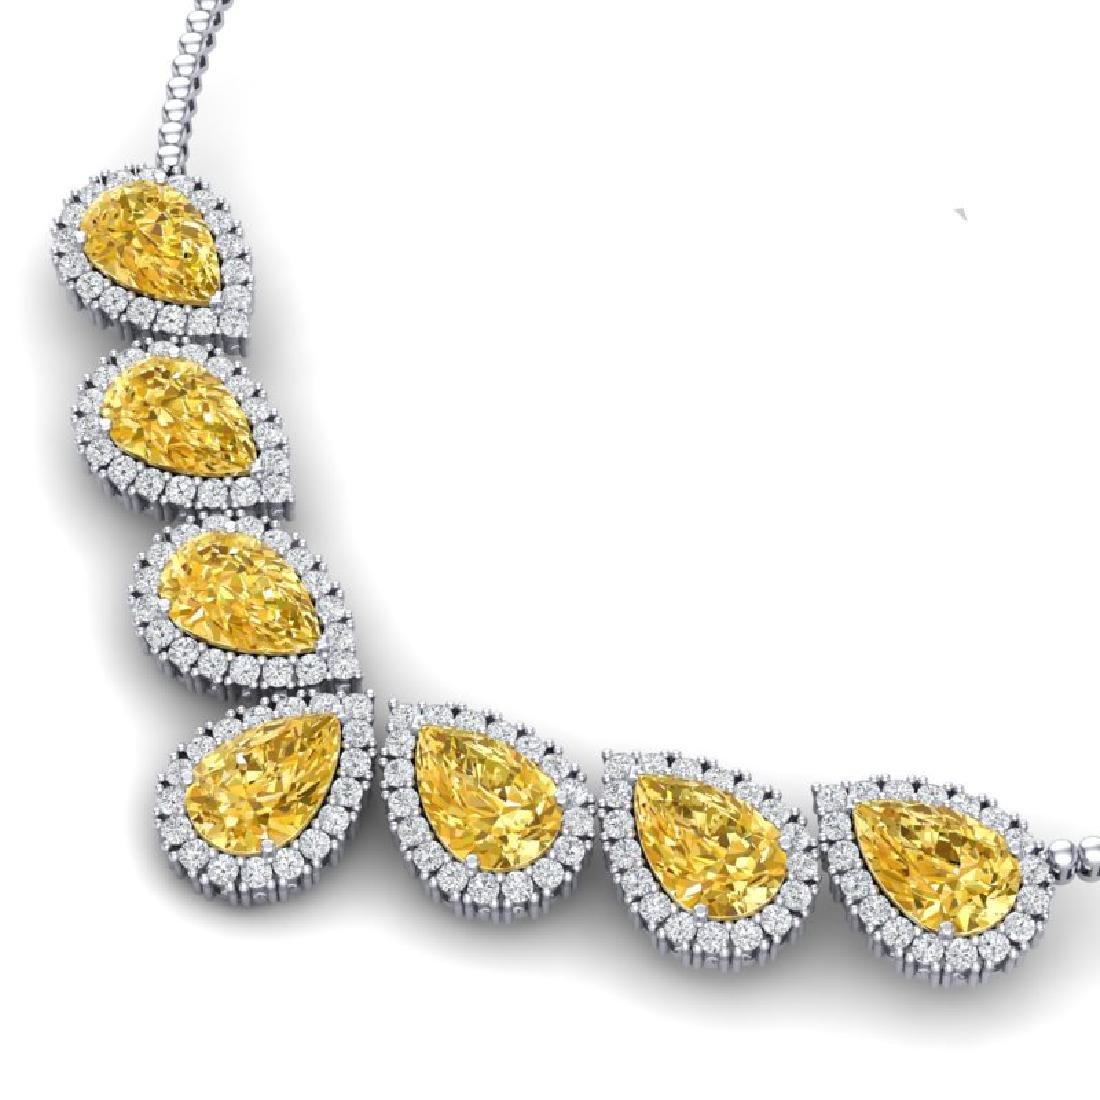 33.34 CTW Royalty Canary Citrine & VS Diamond Necklace - 2